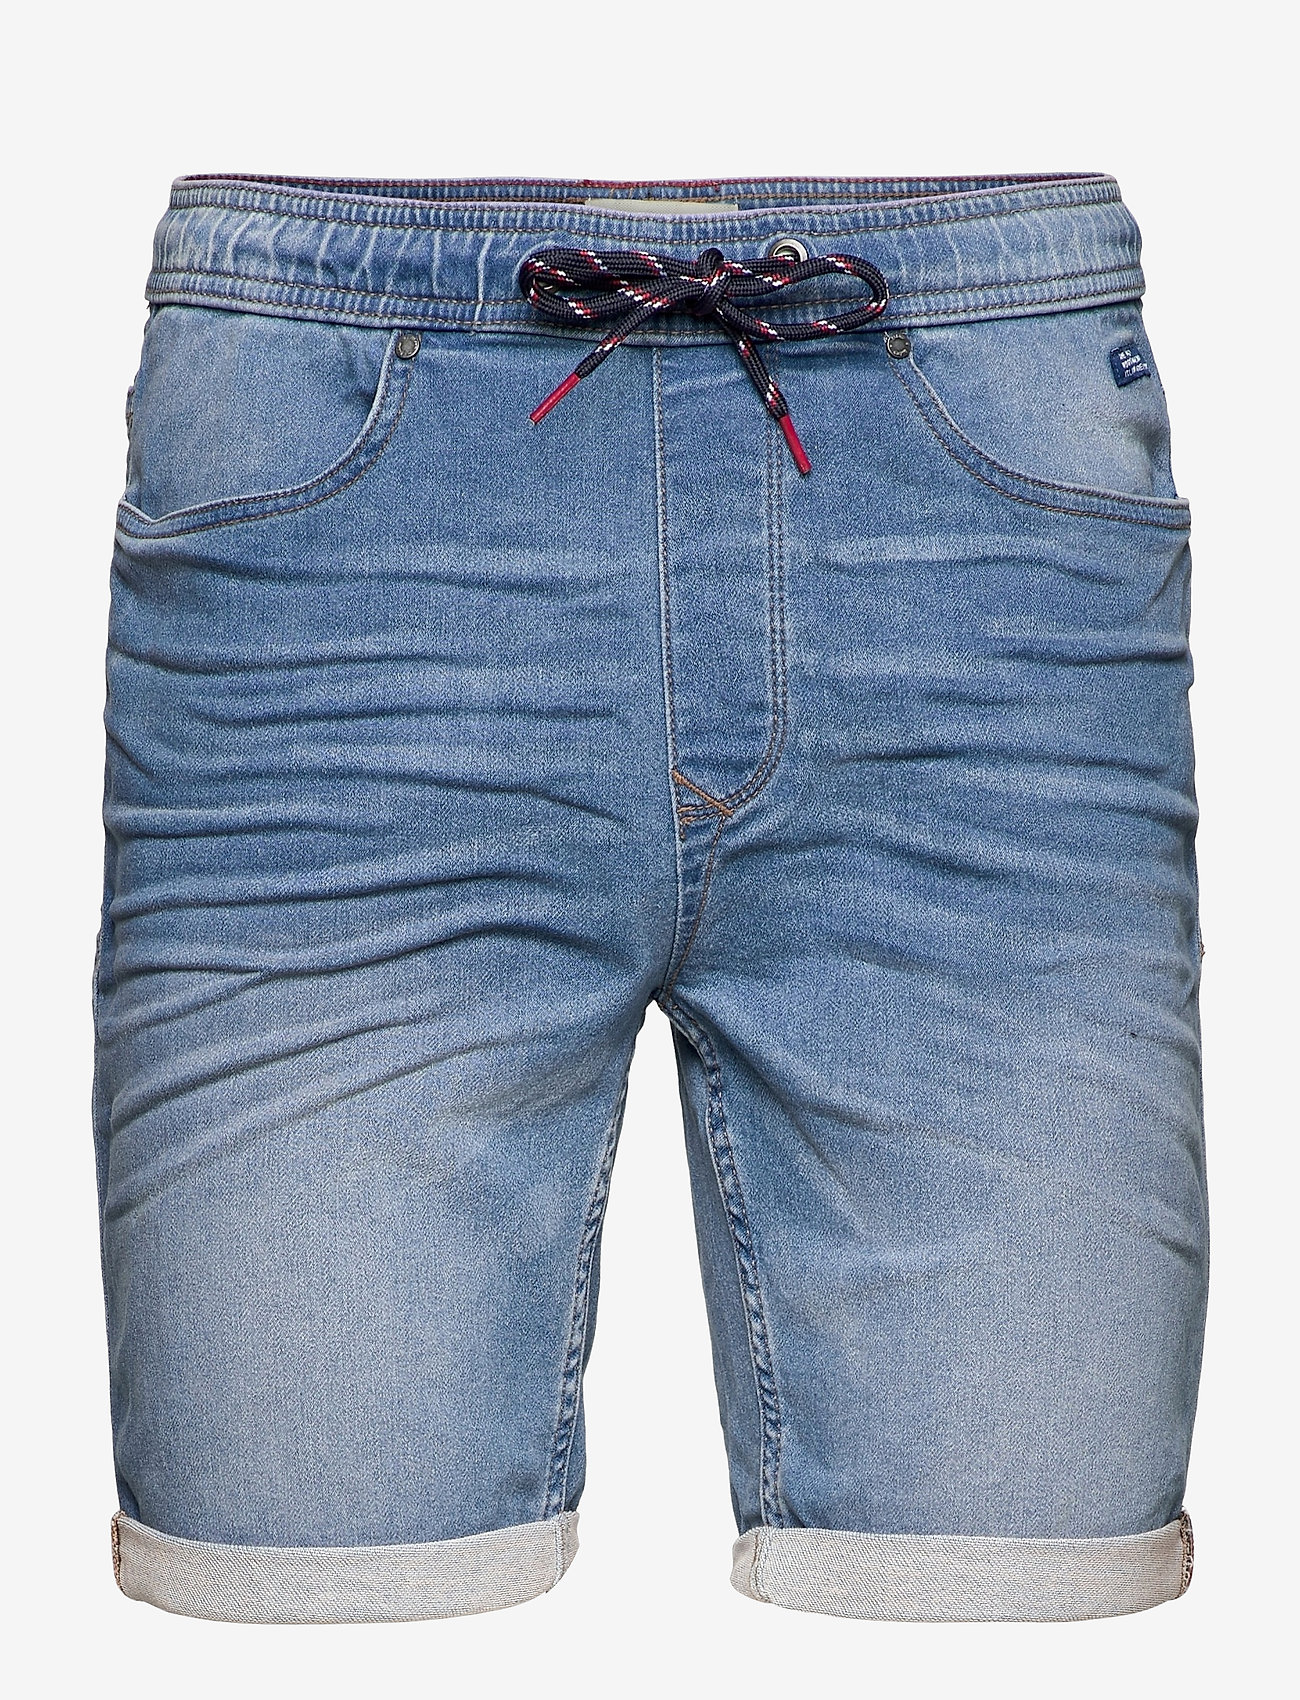 Blend - Denim Jogg shorts - denim shorts - denim middle blue - 0